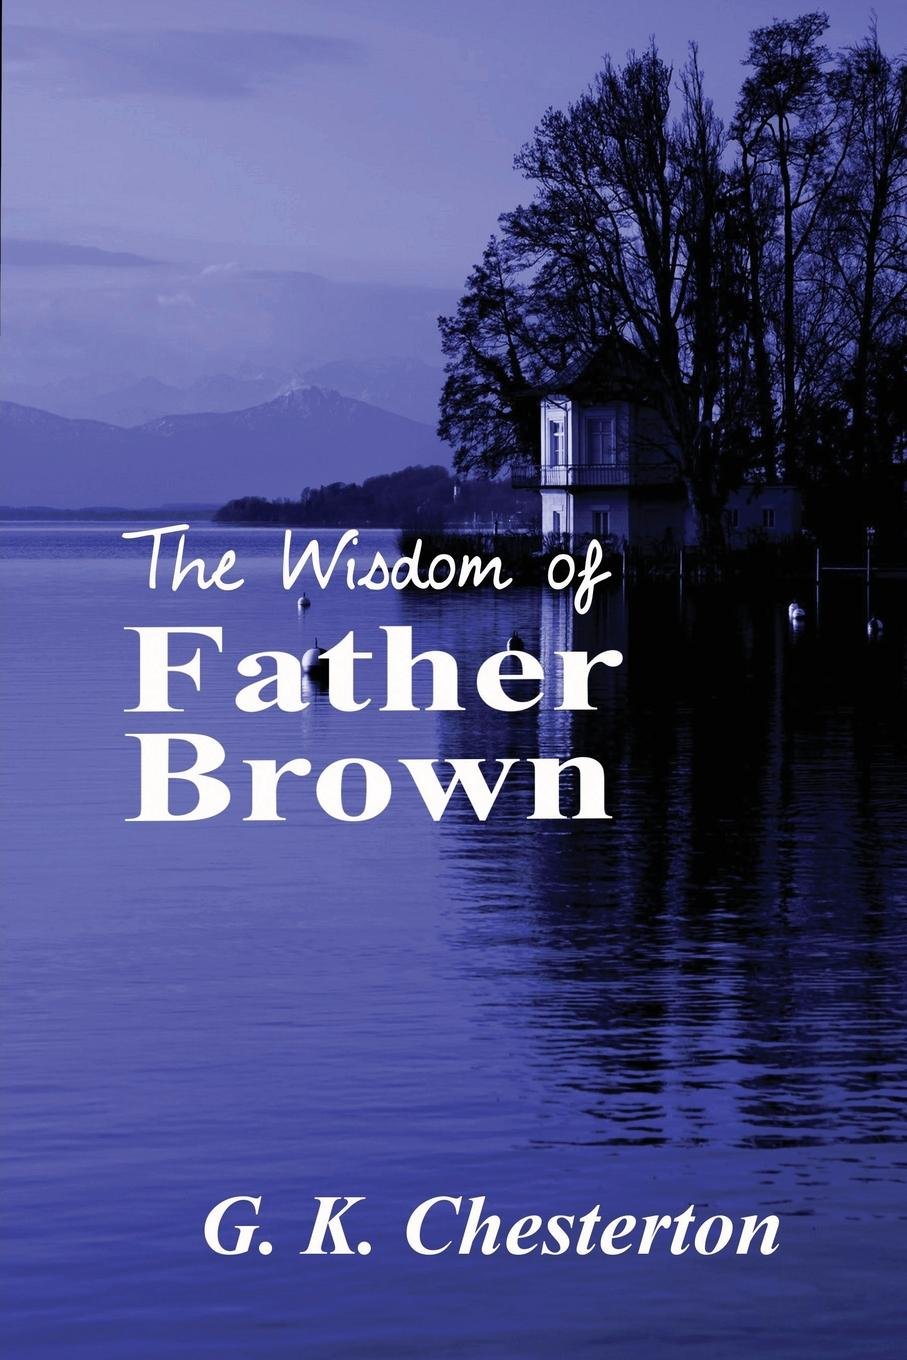 G. K. Chesterton The Wisdom of Father Brown g chesterton father brown stories